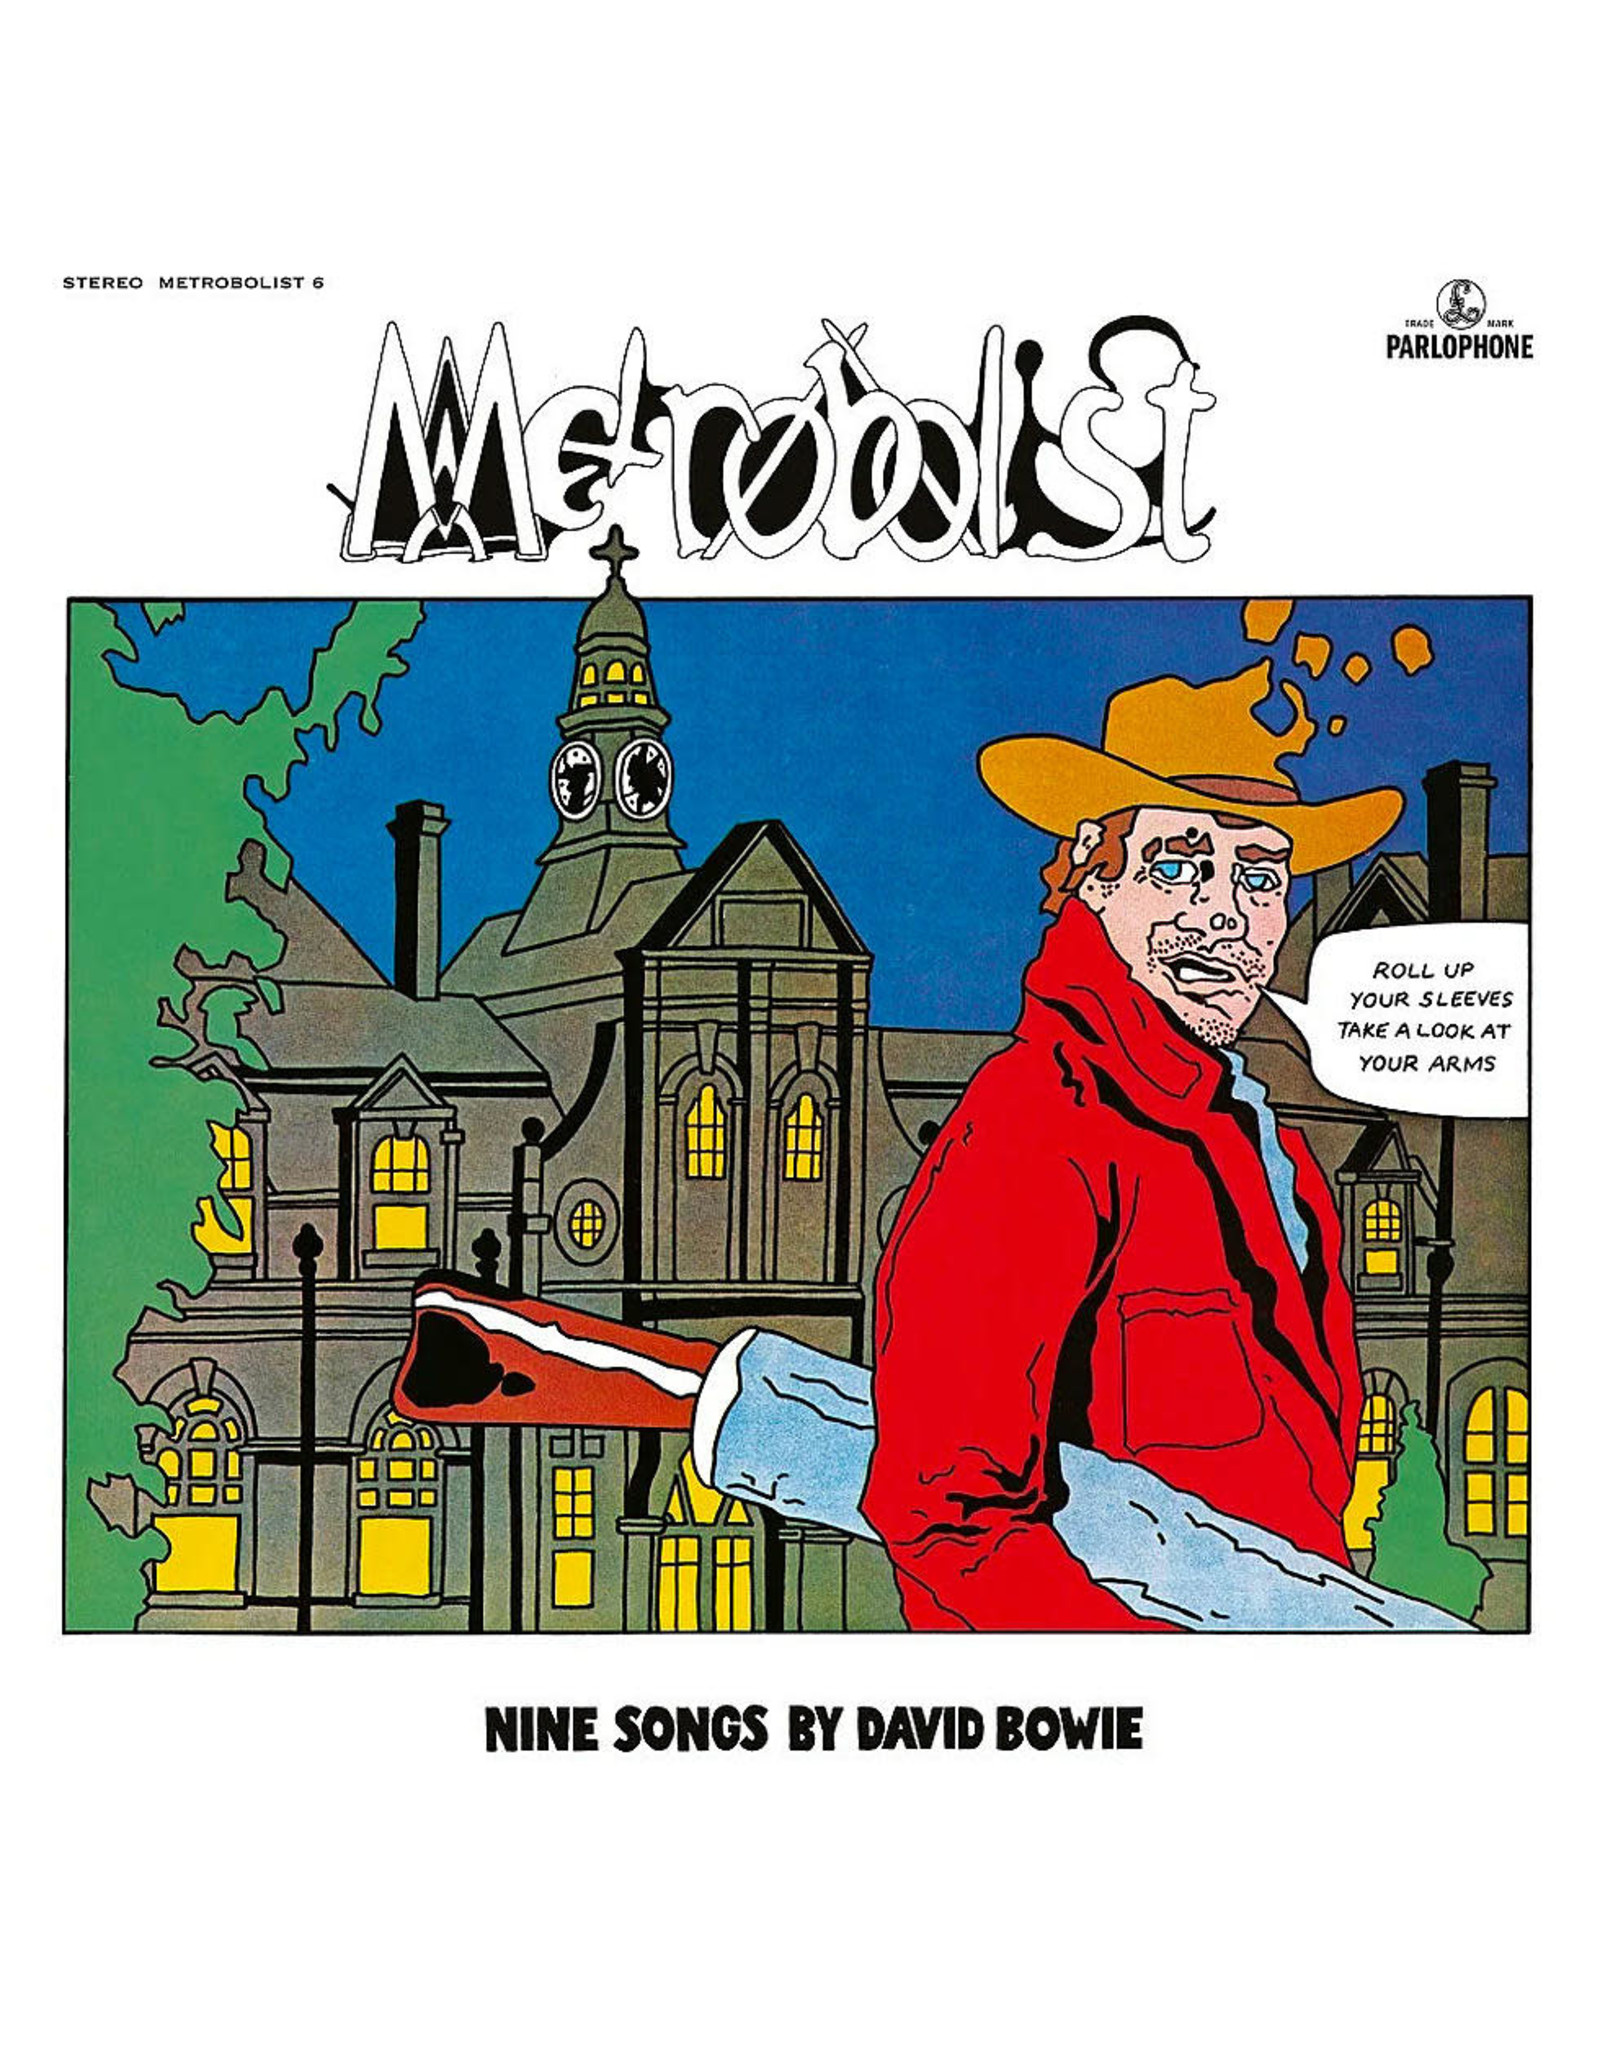 David Bowie - Metrobolist (The Man Who Sold The World) [2020 Mix]